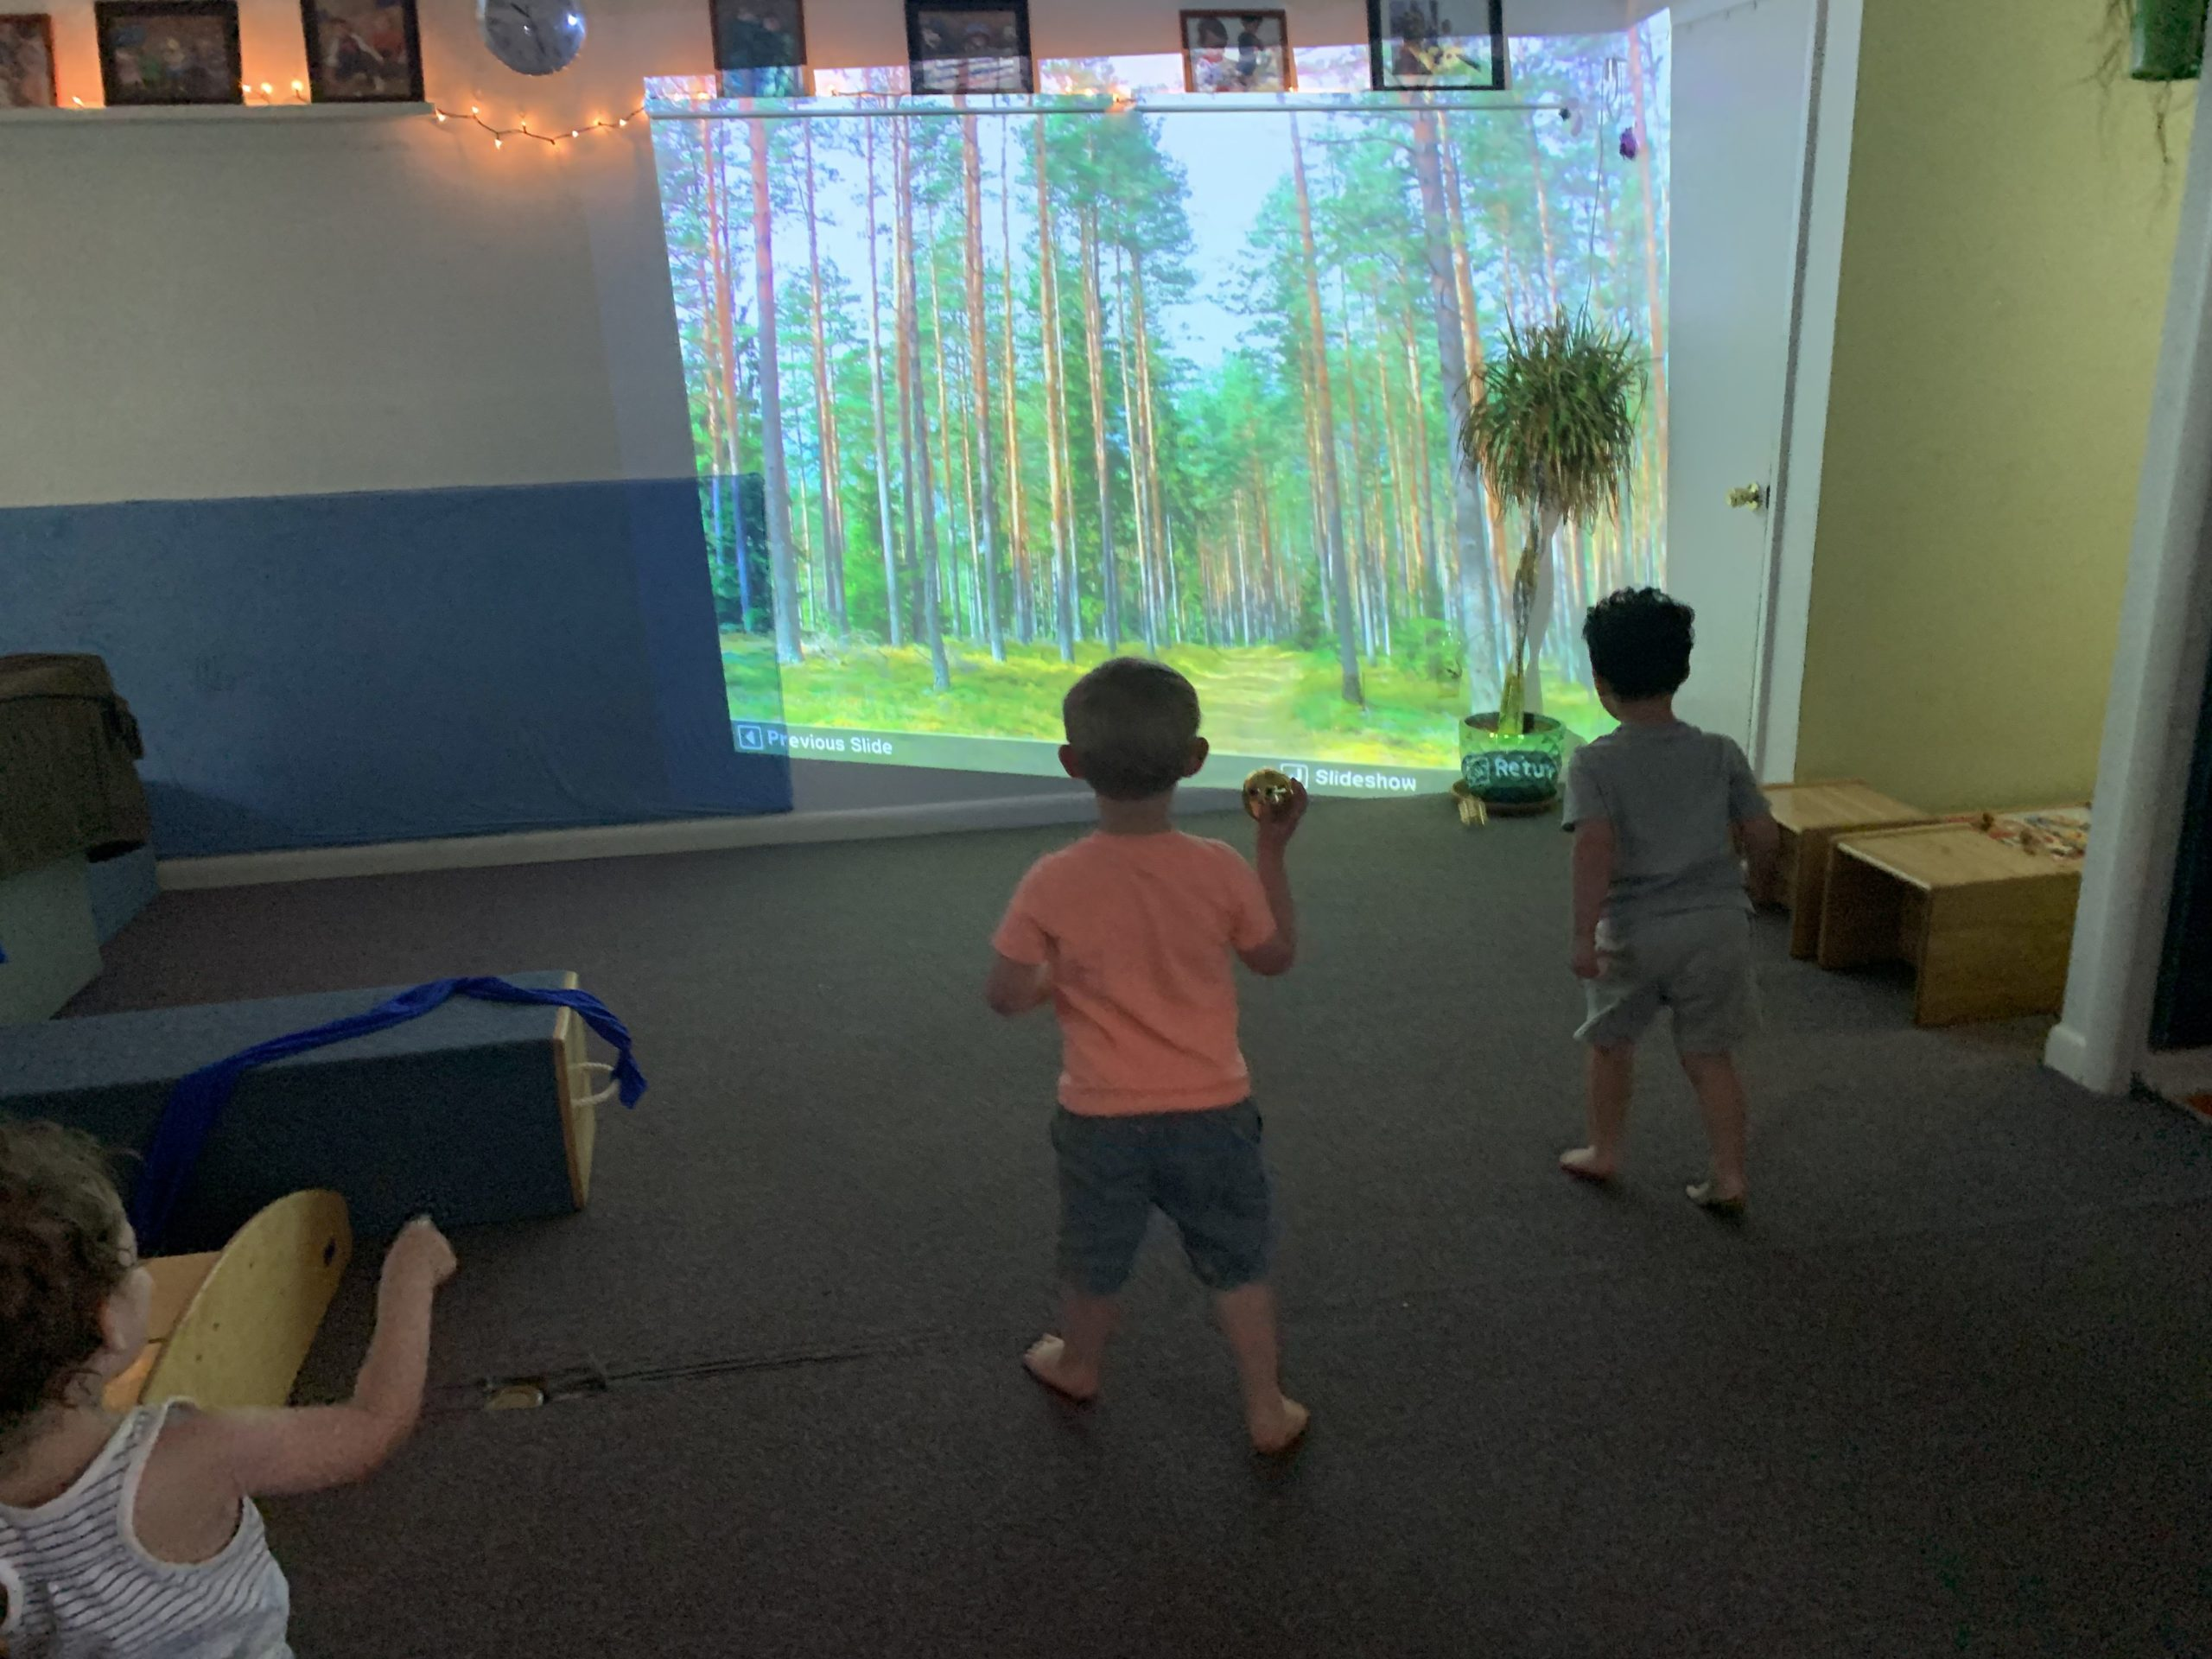 Toddlers playing in their classroom, balls, projector, tree image, light, space, Reggio inspired